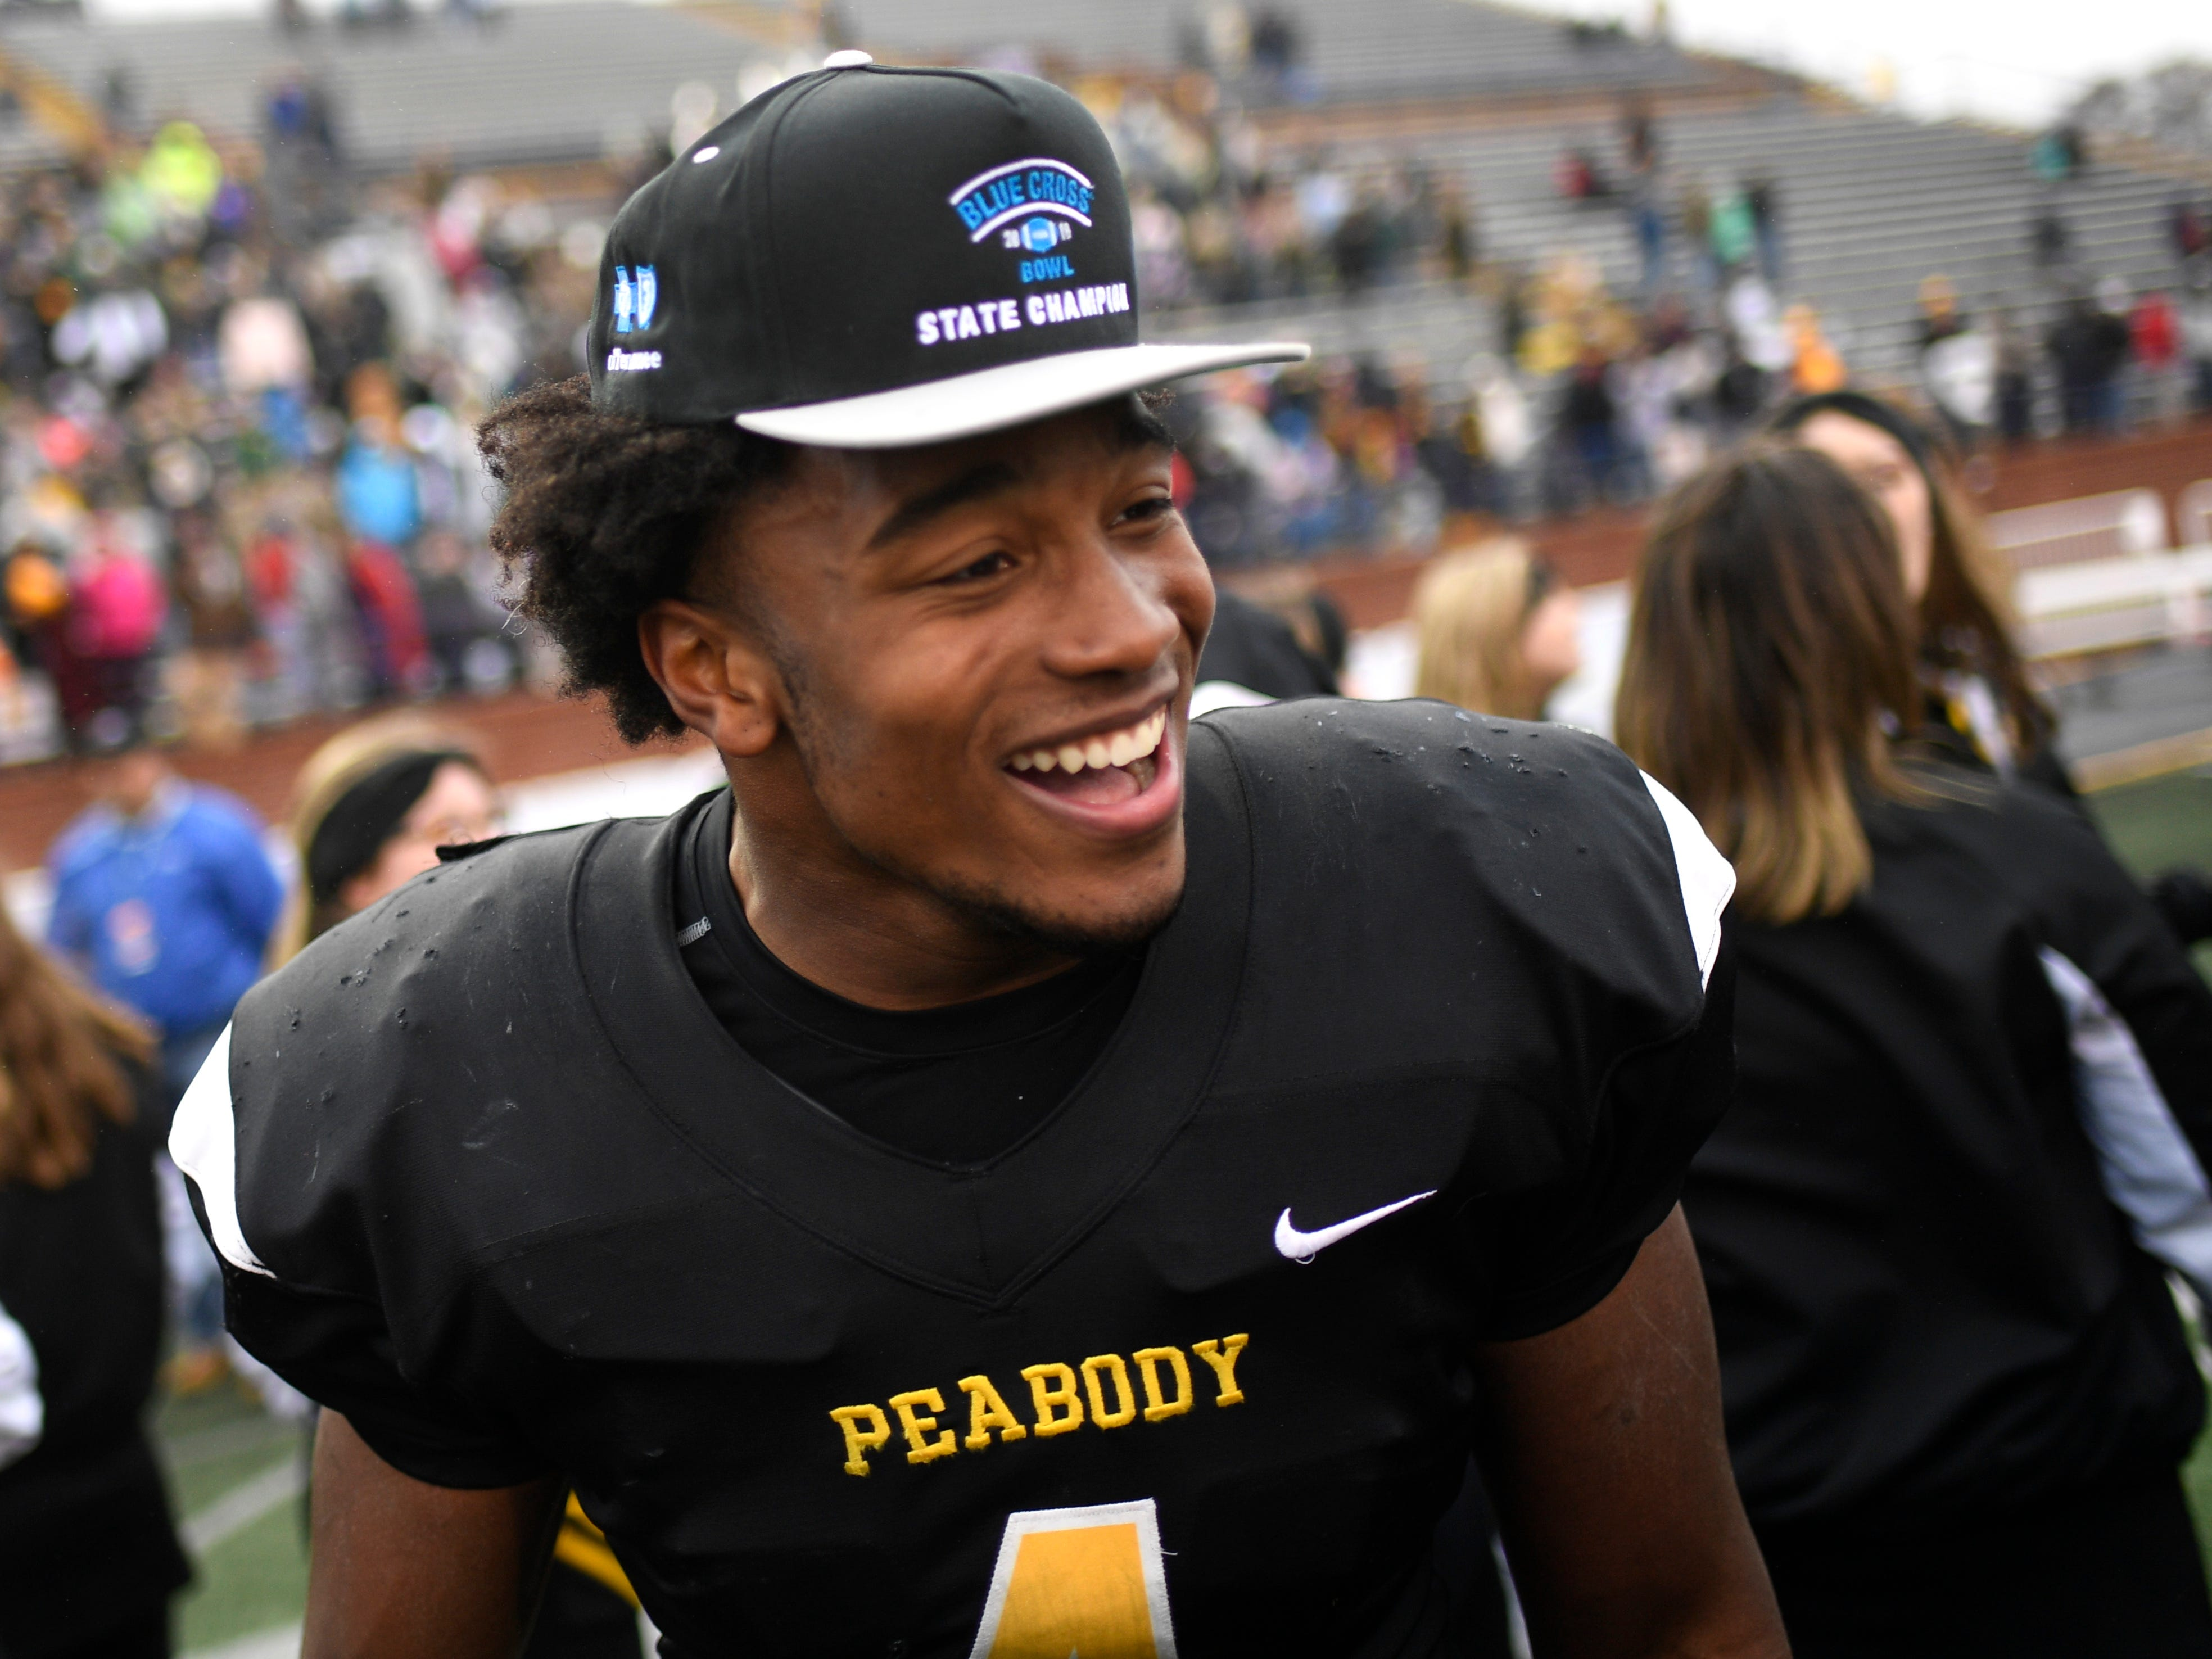 Peabody's Jarel Dickson (4) celebrates the team's 17-9 win over Trousdale in the Class 2A BlueCross Bowl state championship at Tennessee Tech's Tucker Stadium in Cookeville, Tenn., on Thursday, Nov. 29, 2018.